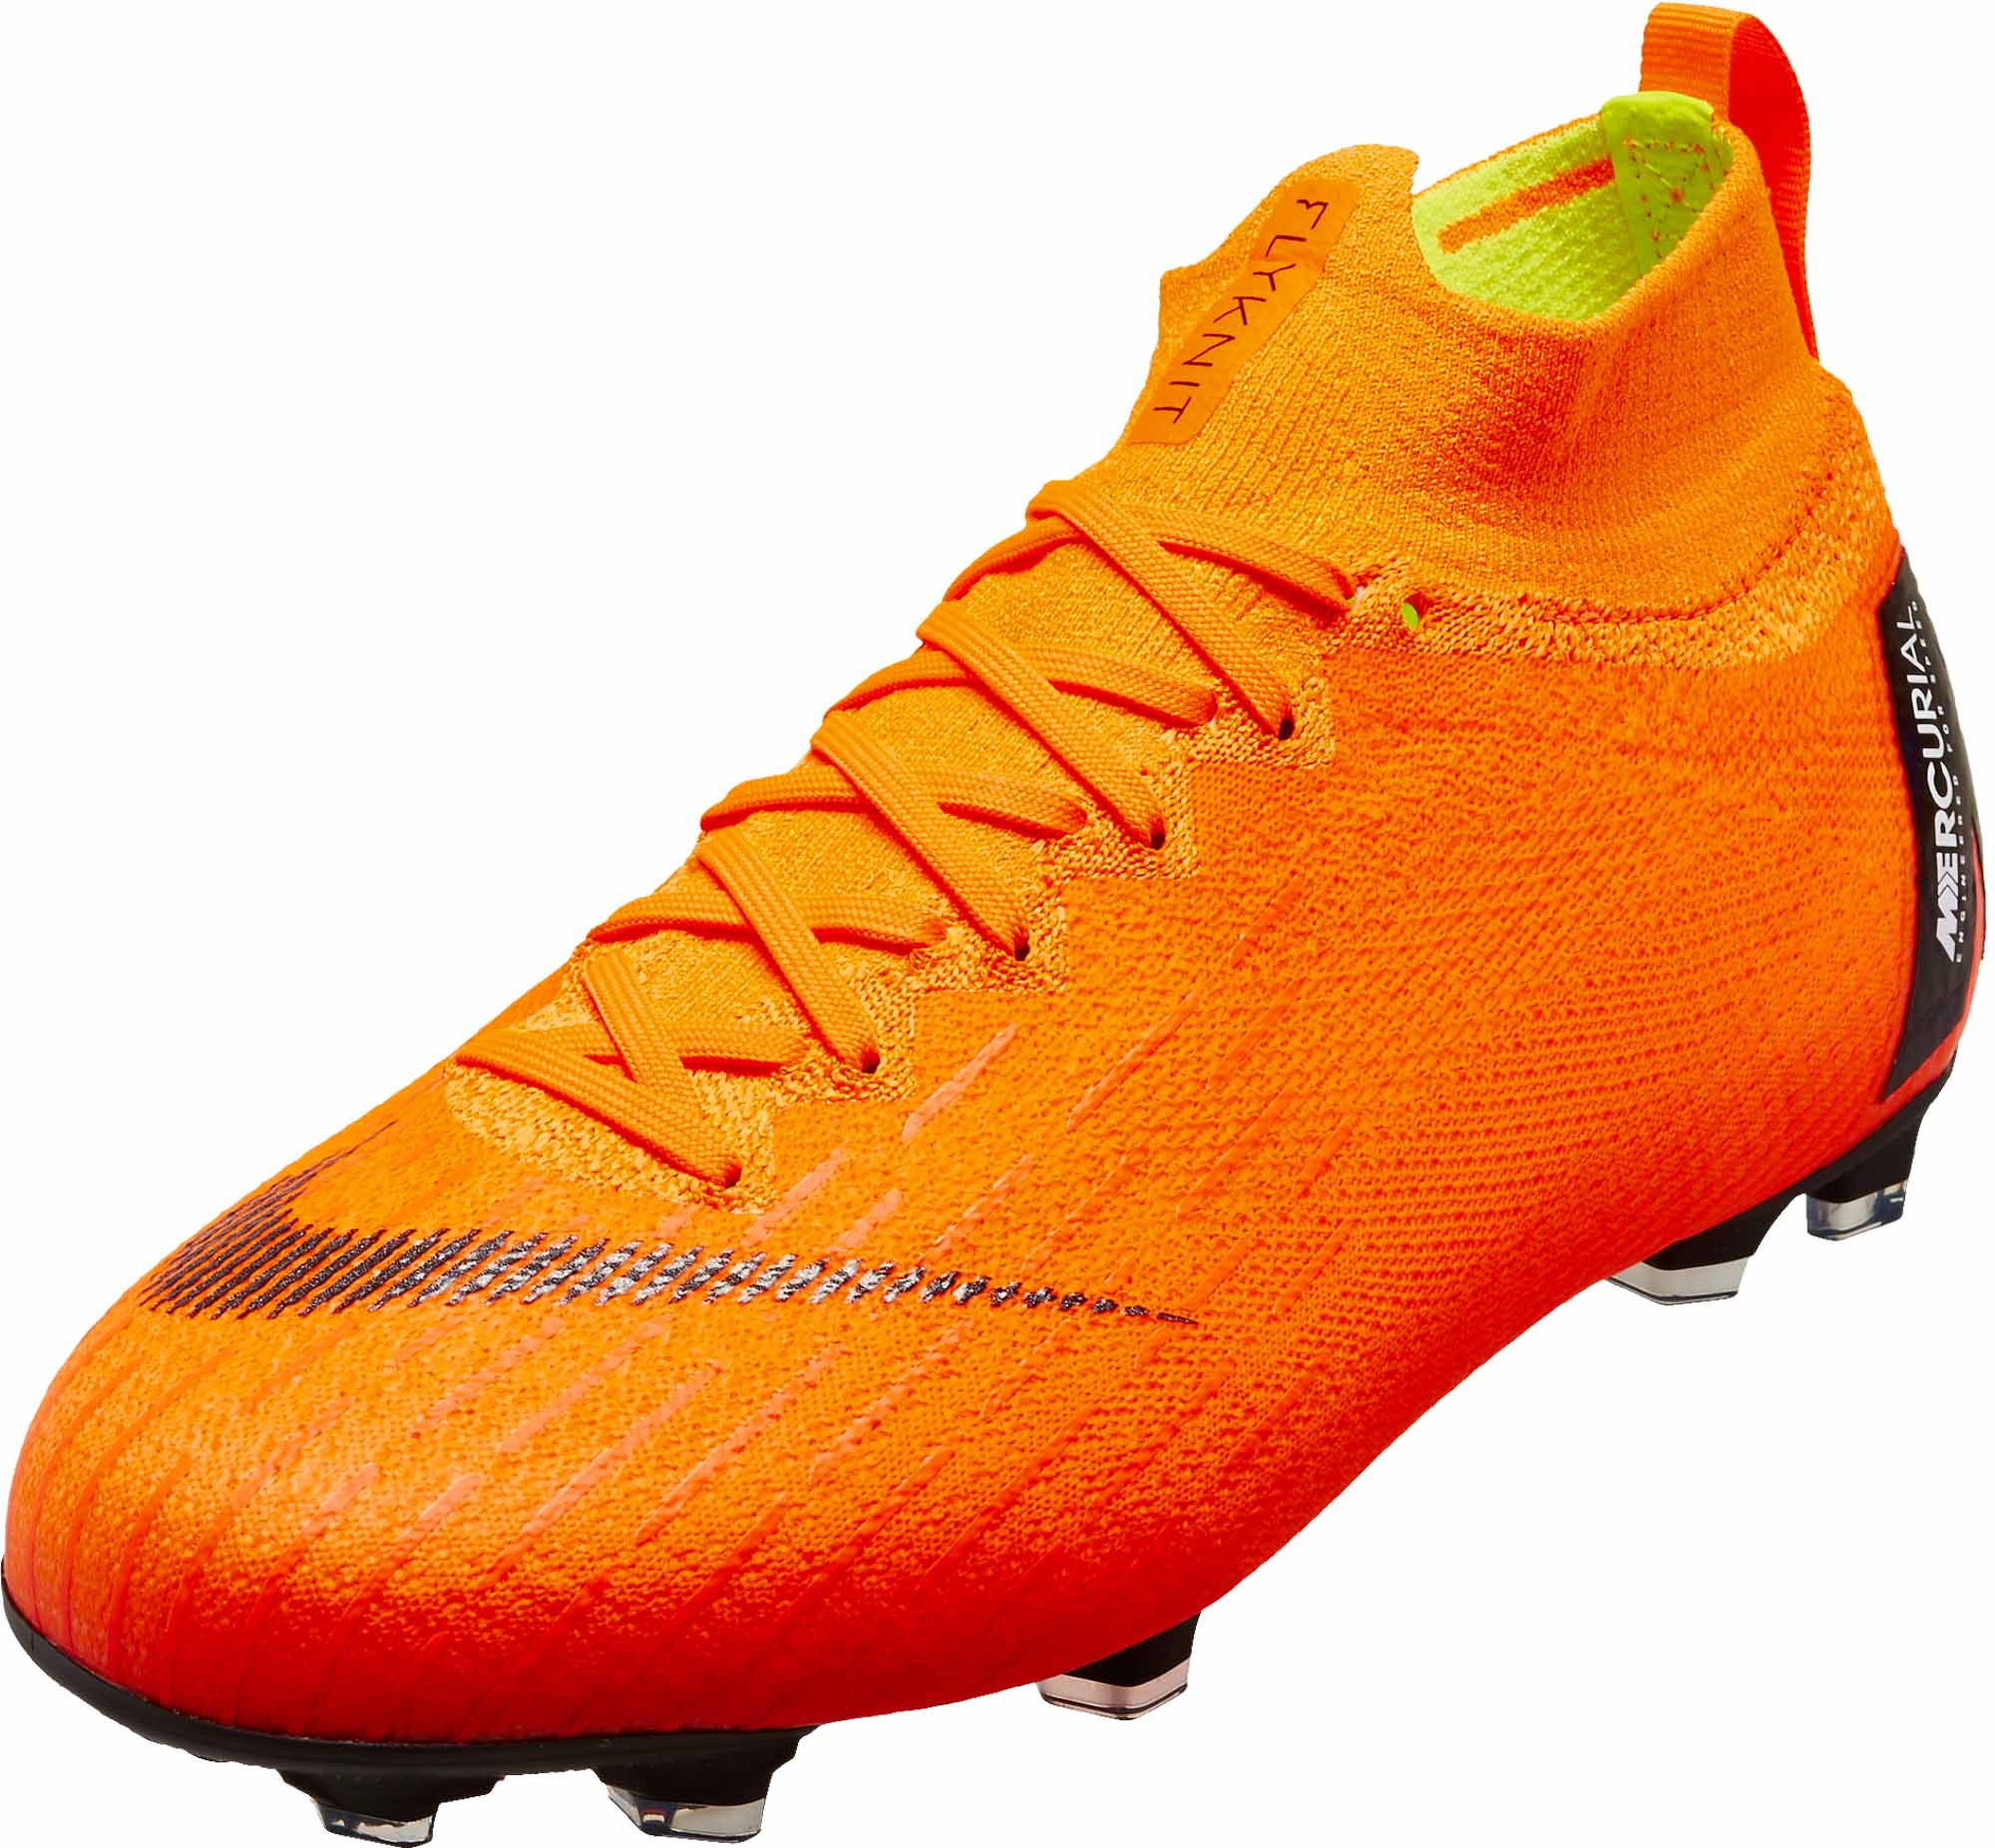 94dcd41b14f Nike Kids Superfly 6 Elite FG - Orange Nike Cleats